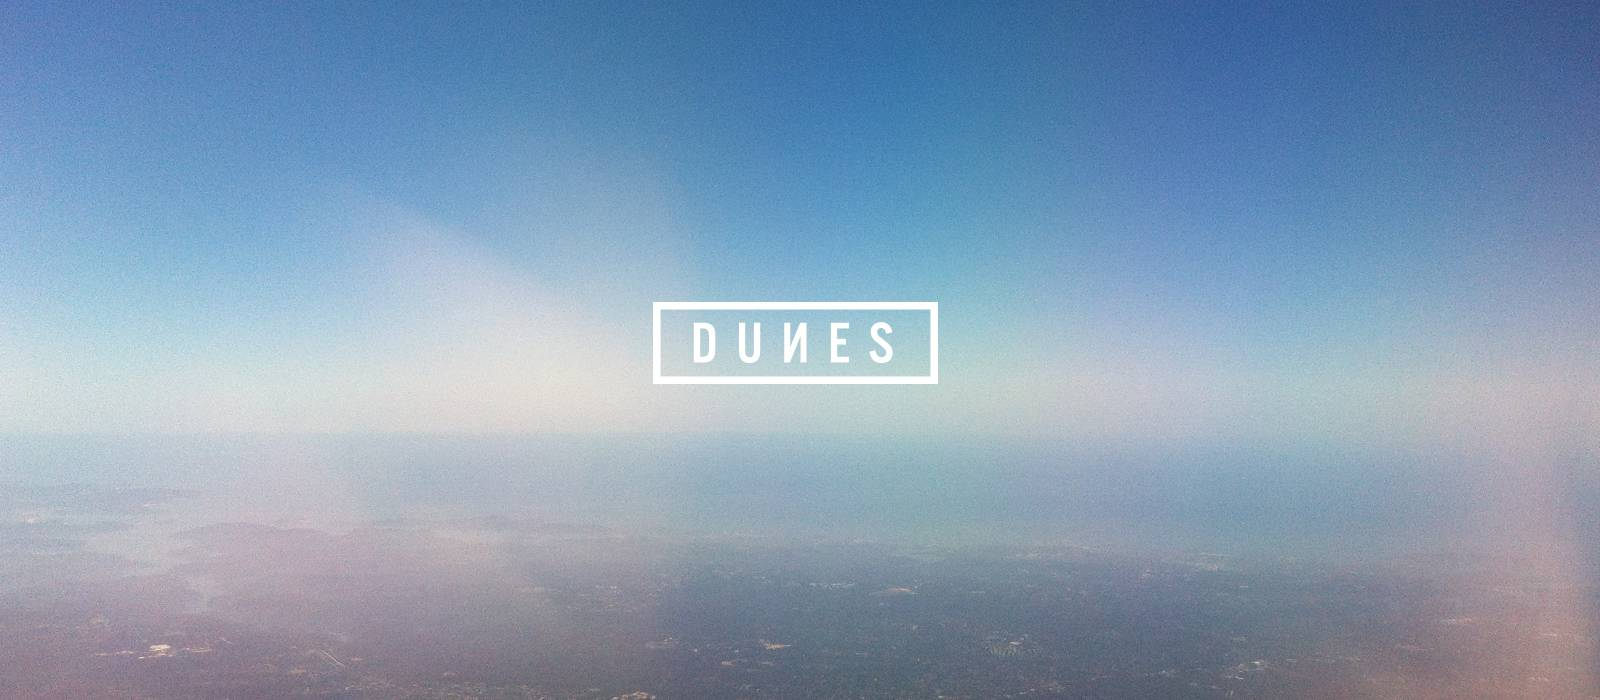 Dunes-Home-Slide-Logo